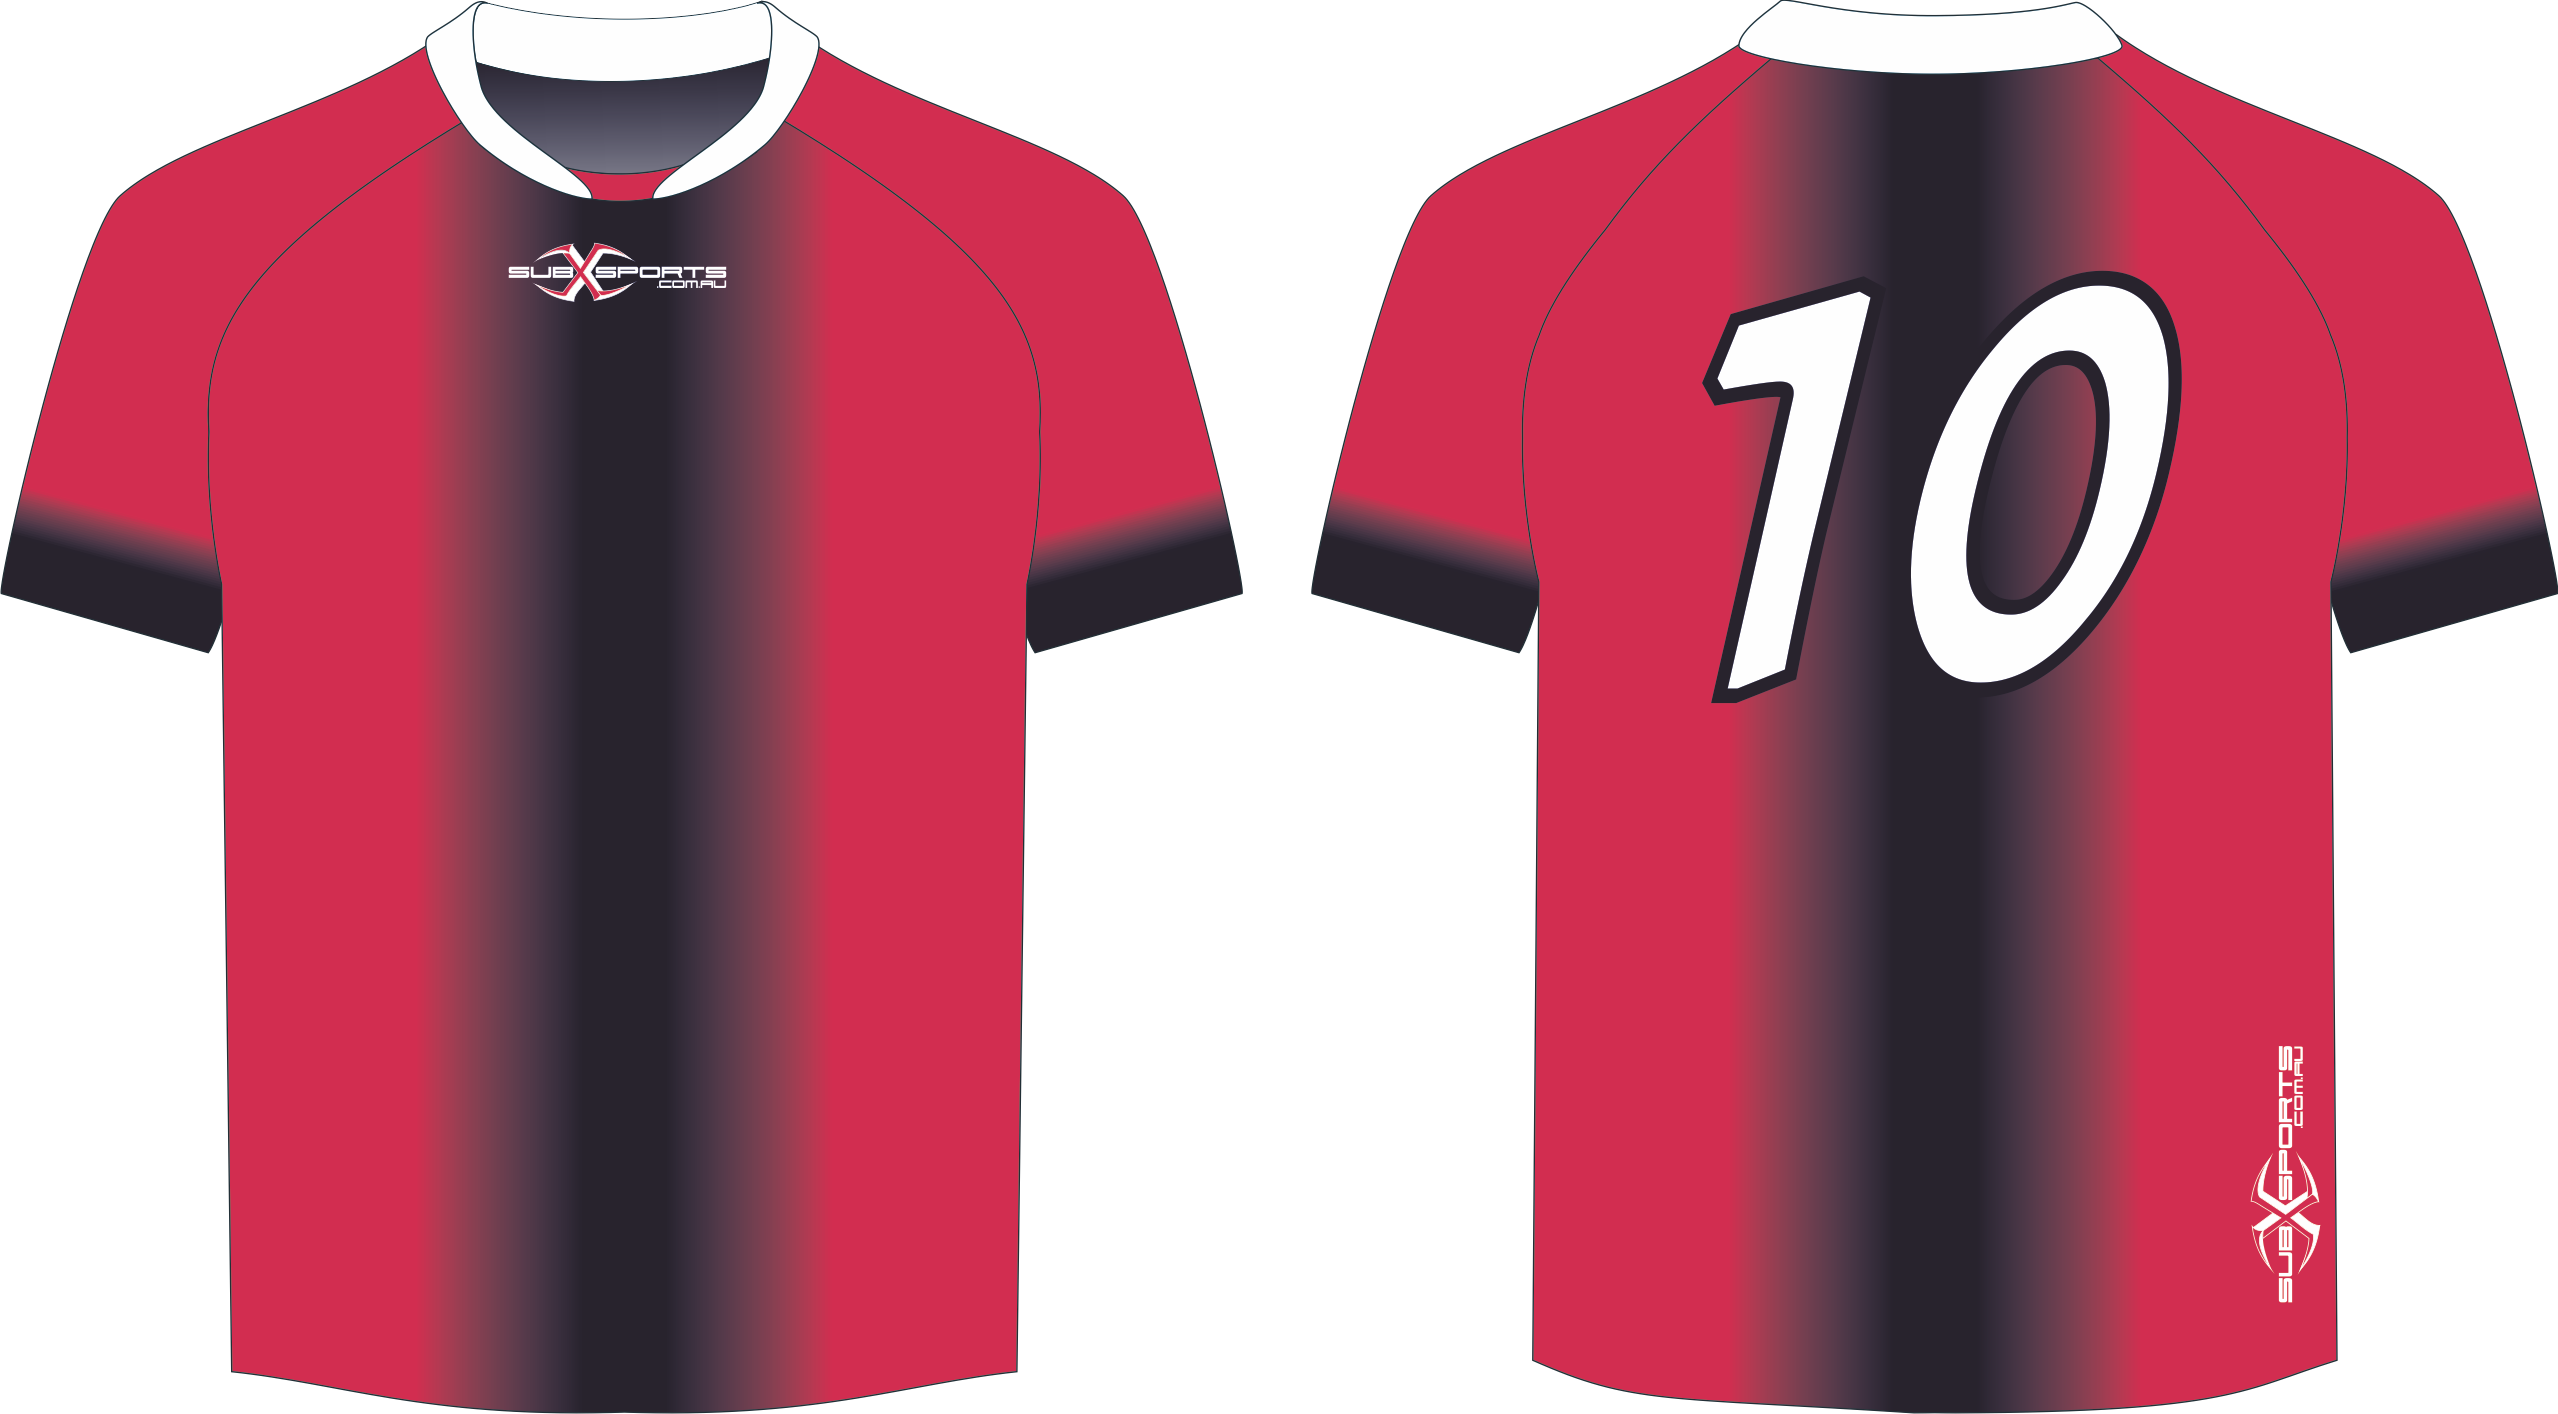 S205XJ Jersey Red Black.png